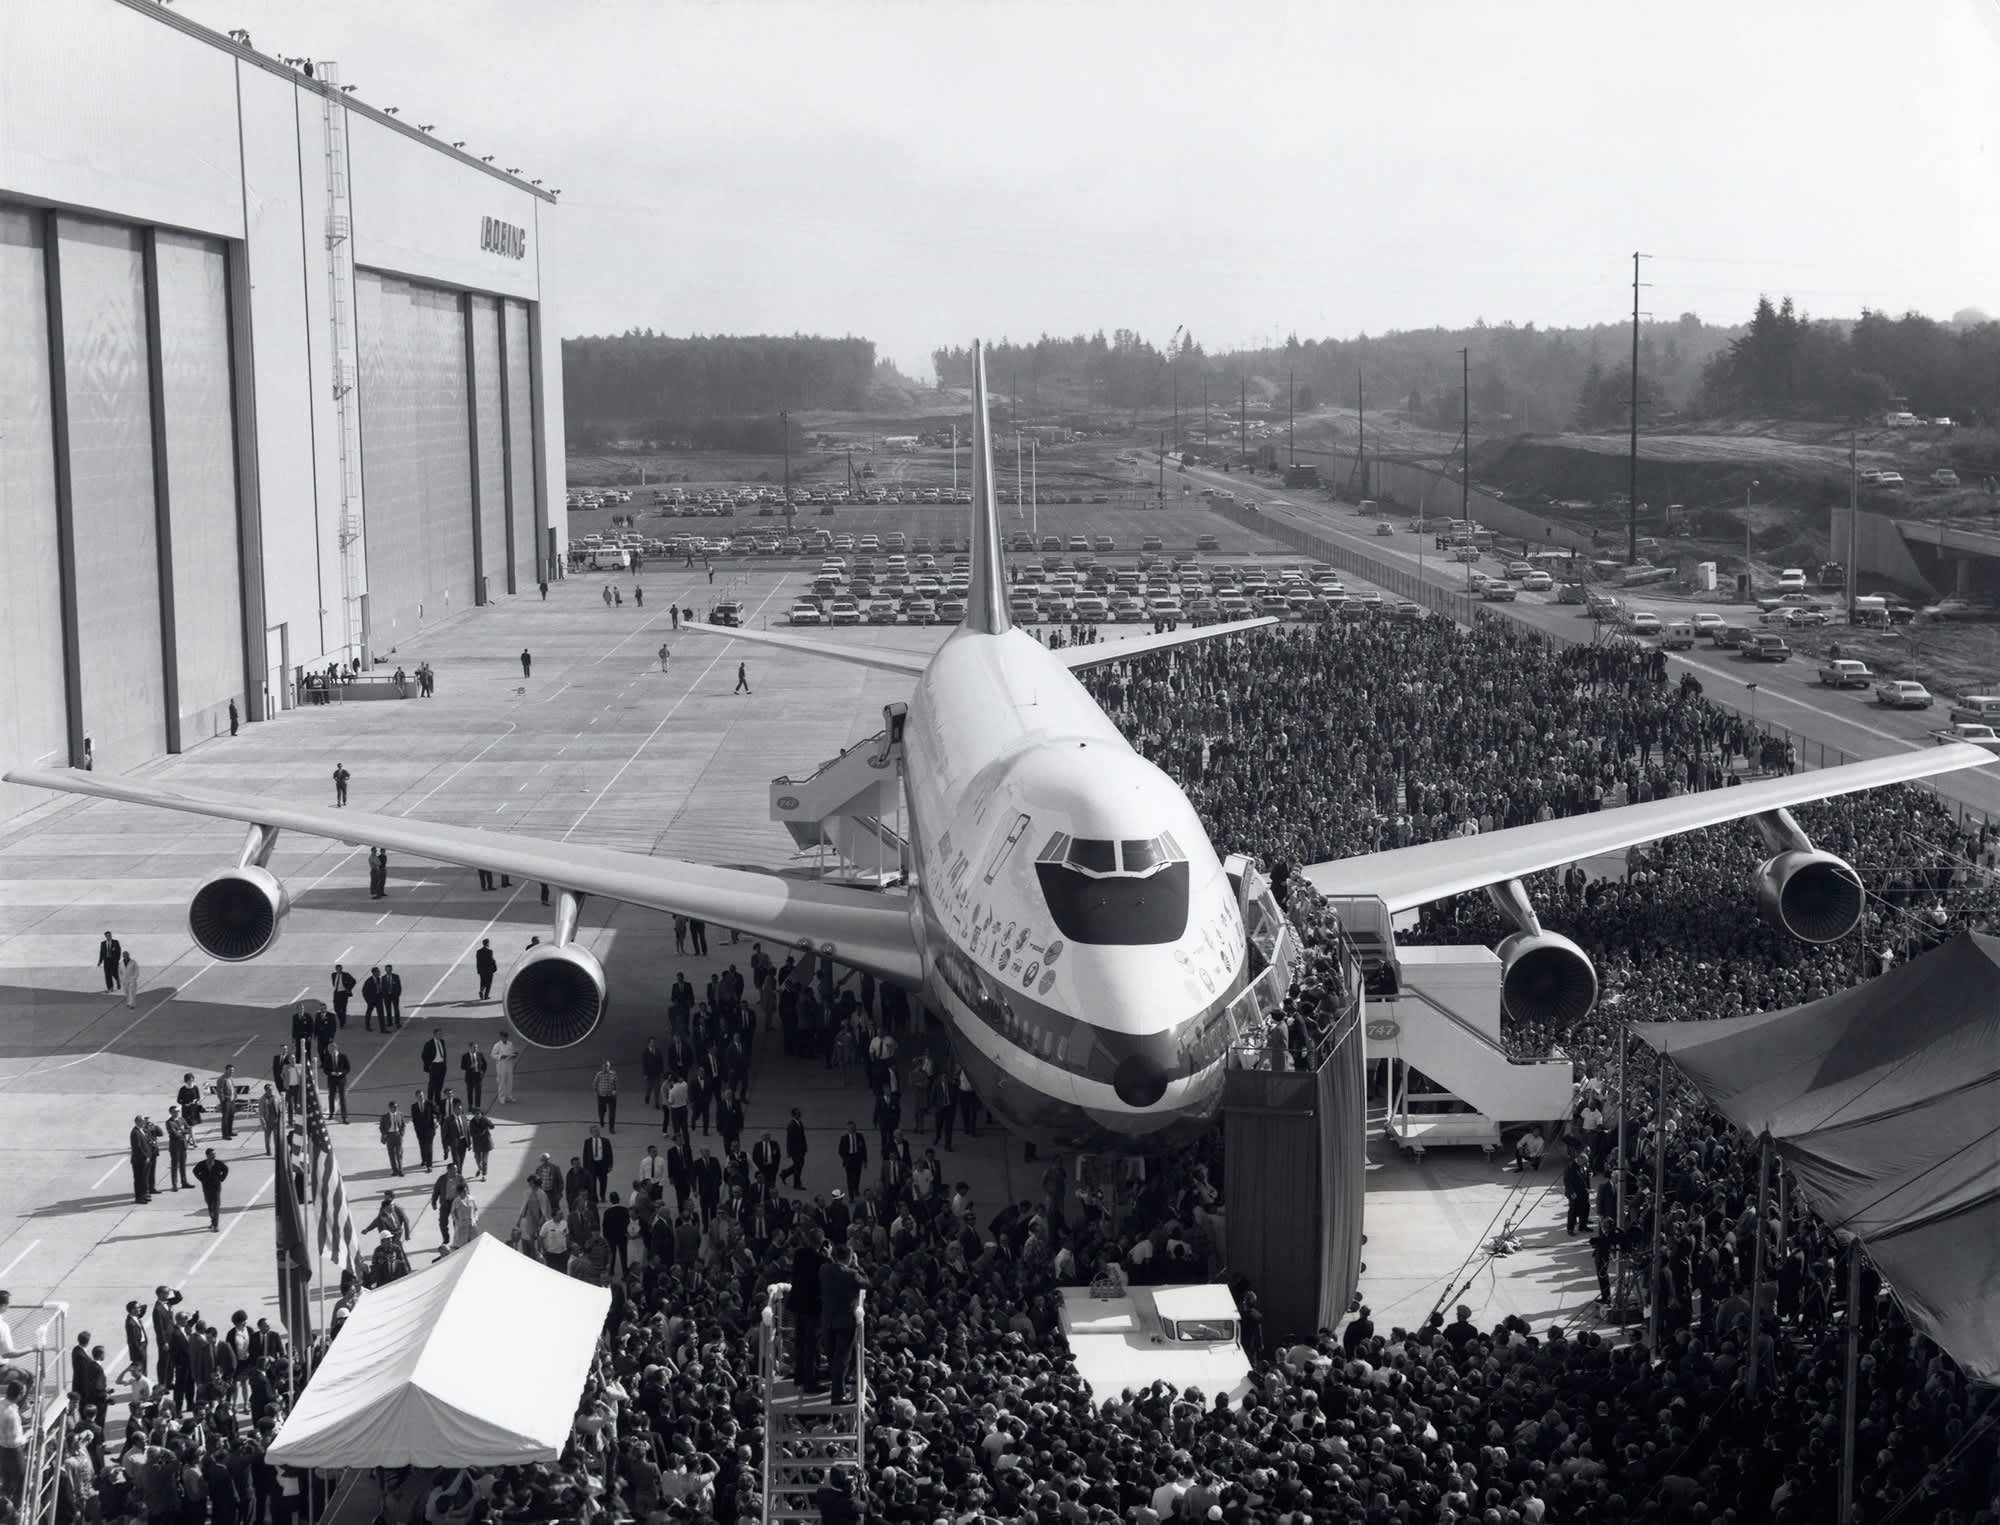 how boeing changed the world The boeing 747 'jumbo jet' changed the world, bringing air travel to the masses, and allowing non-stop flights between distant cities across the globe.